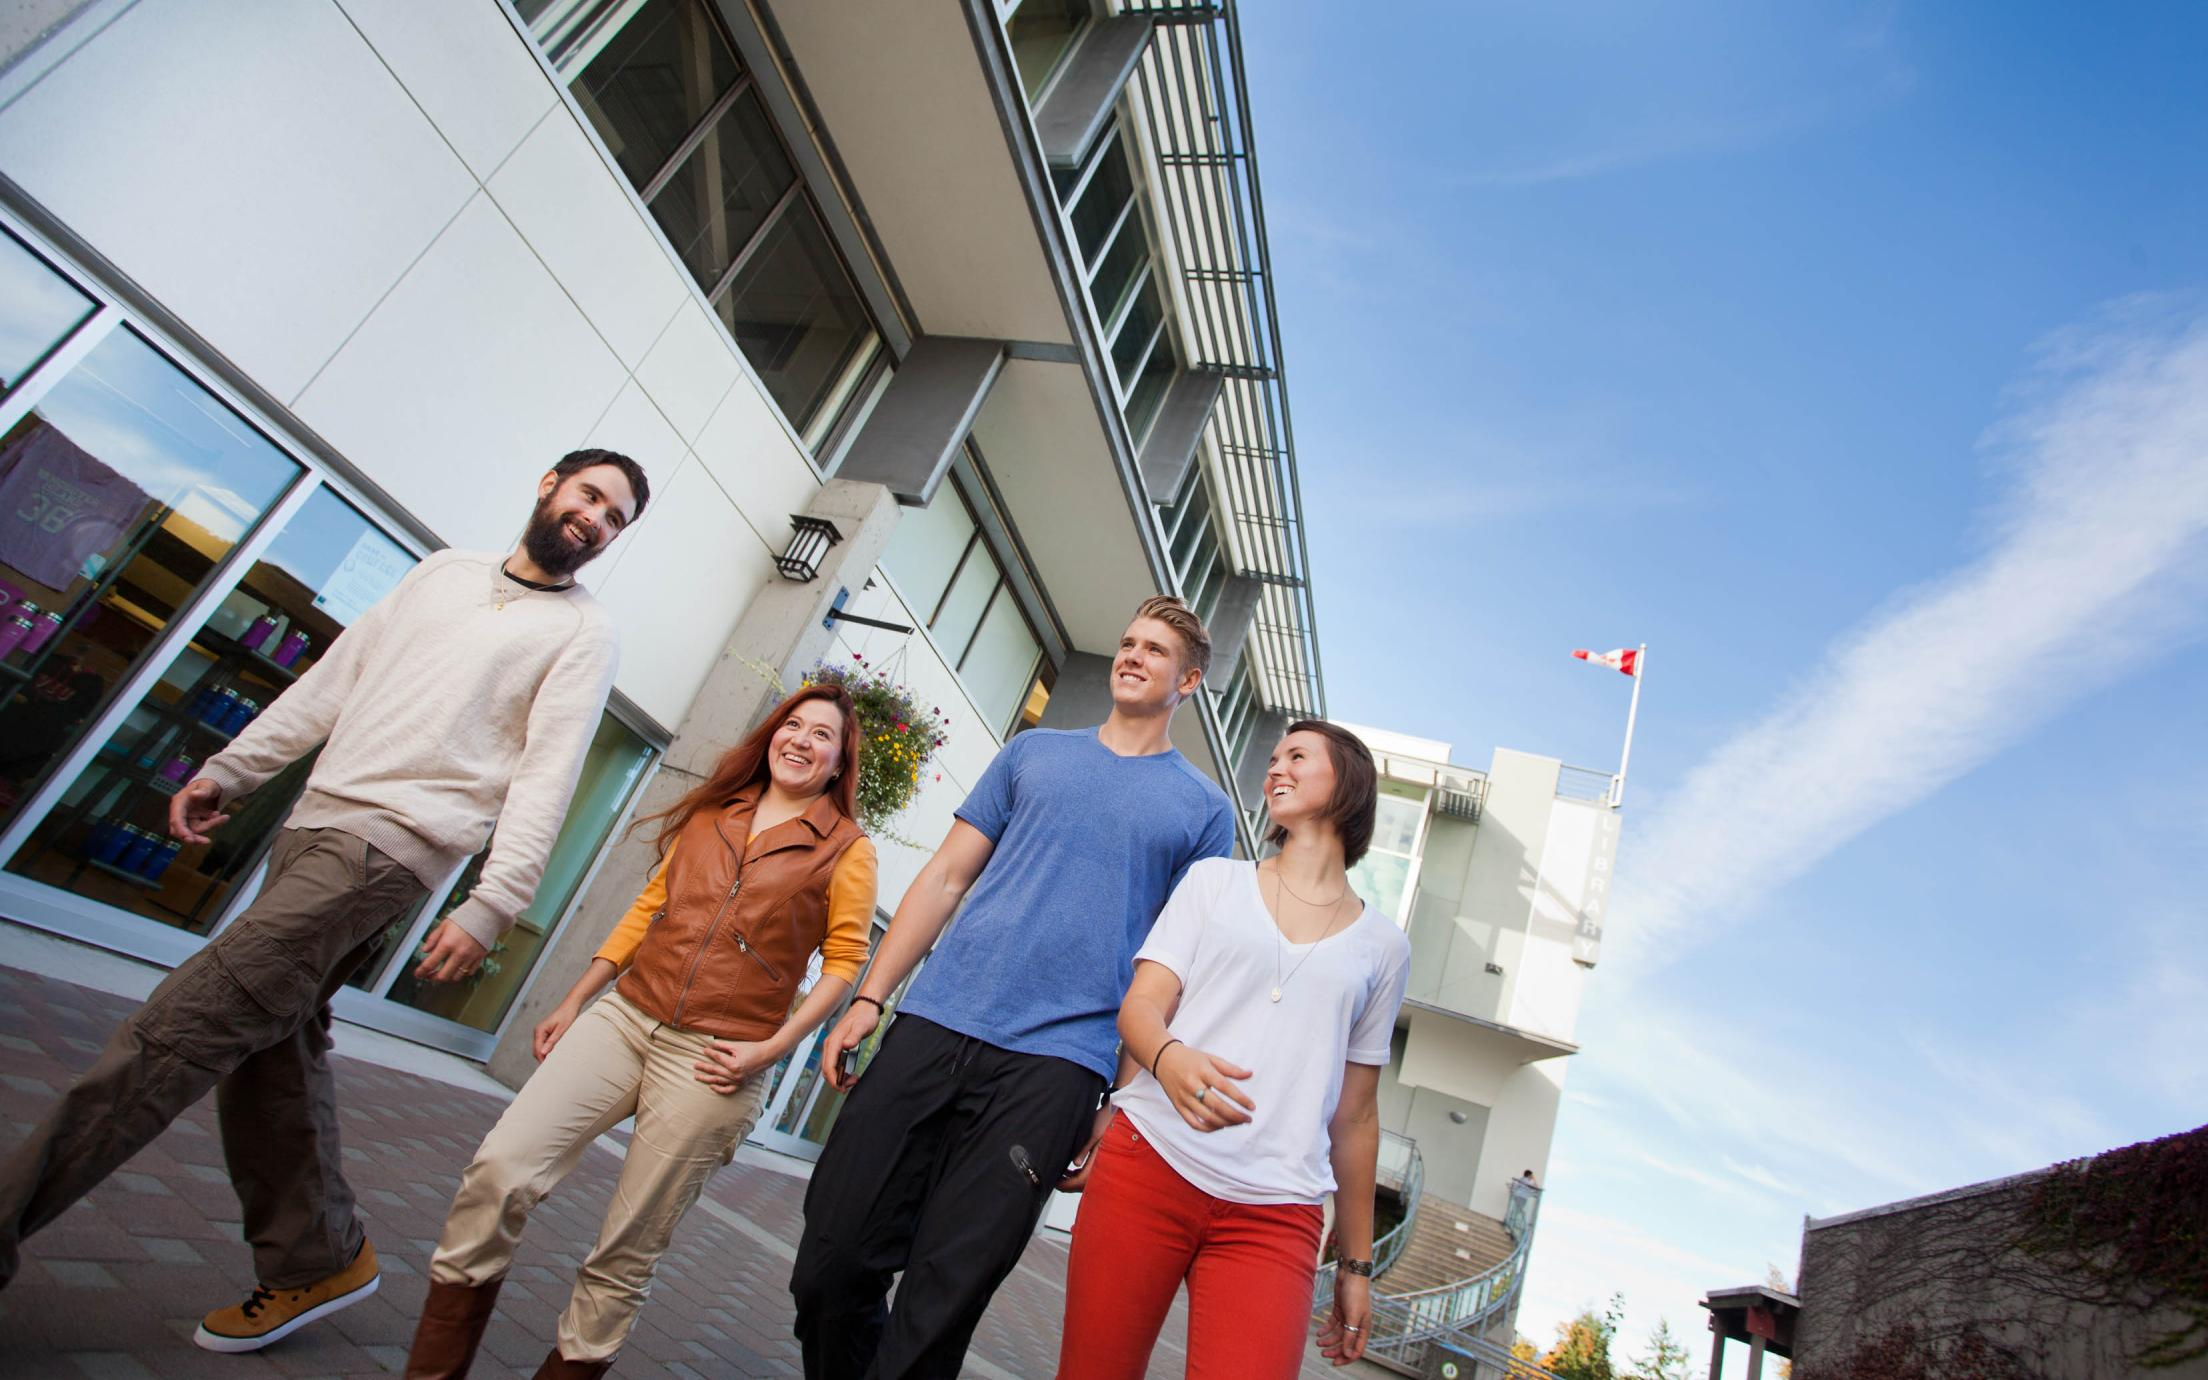 Students of the Certificate in Business Management program strolling around VIU's campus